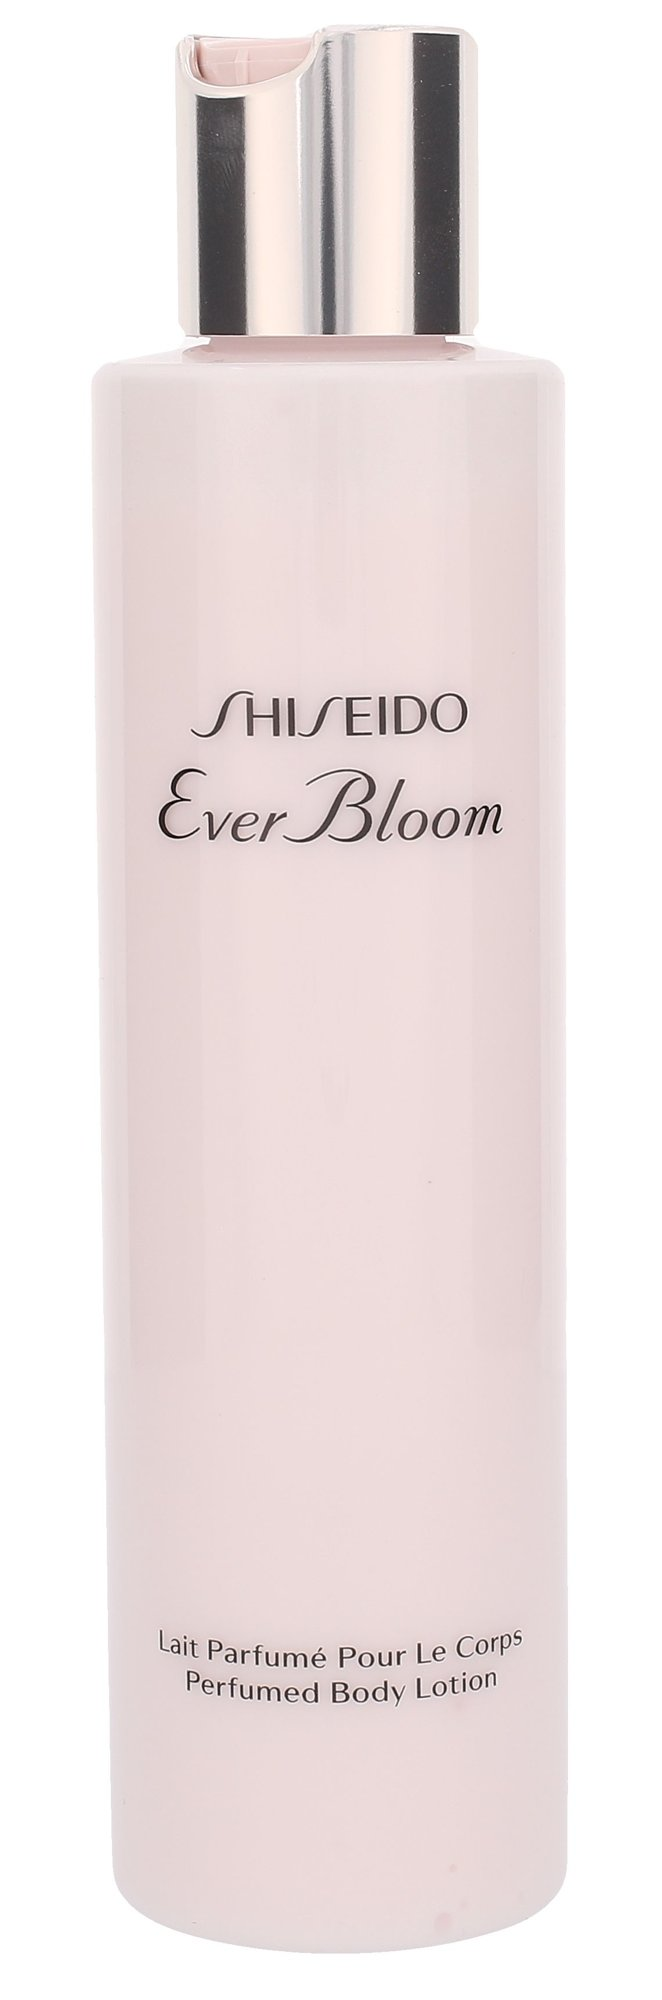 Shiseido Ever Bloom Cosmetic 200ml